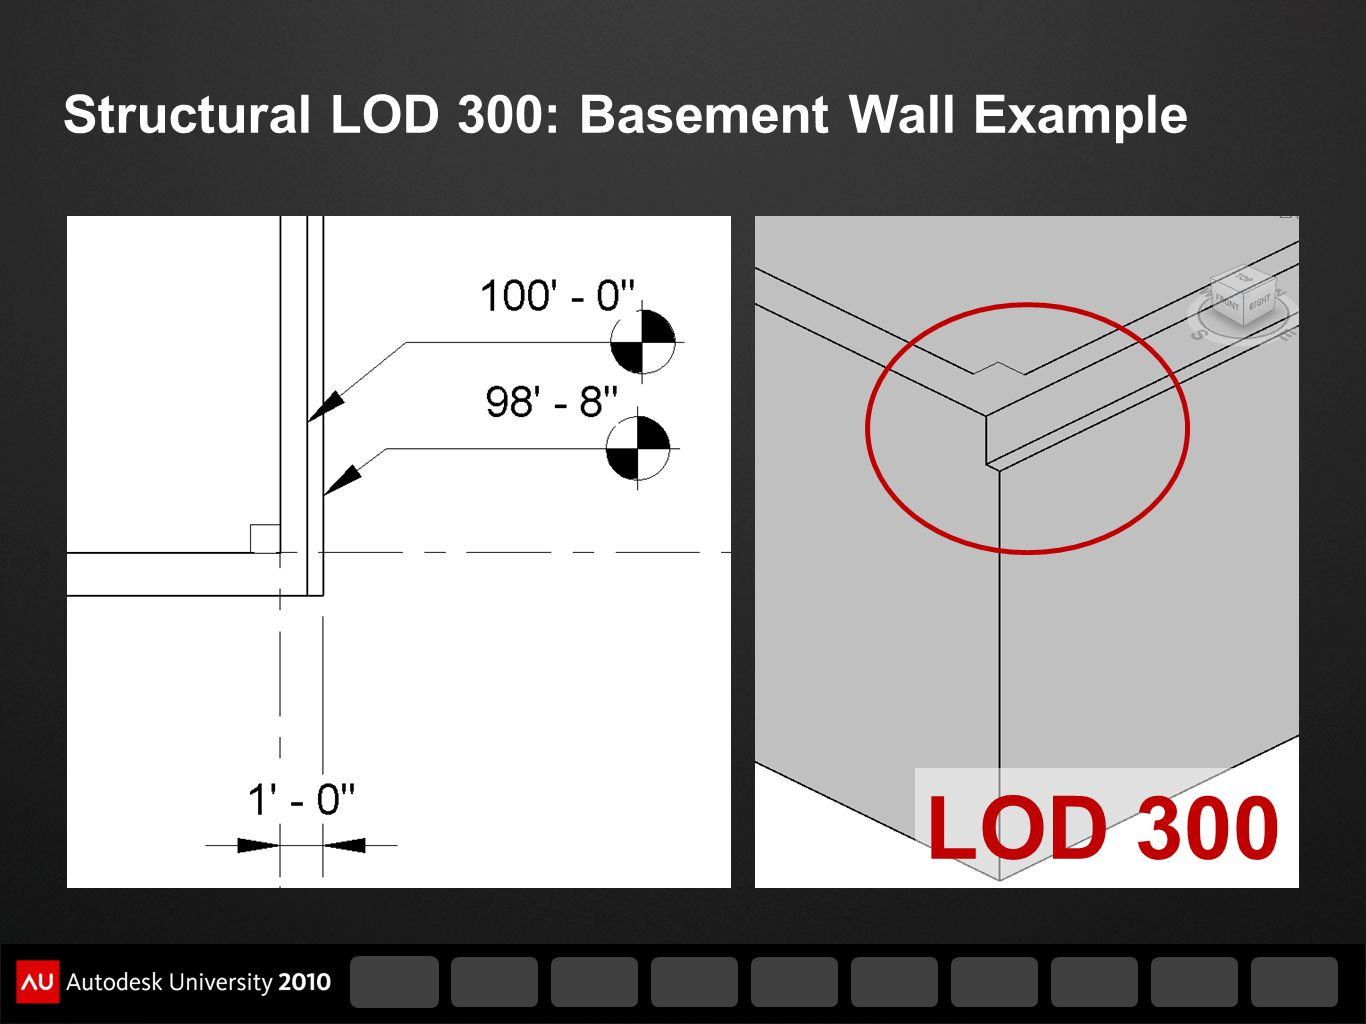 Structural LOD 300: Basement Wall Example